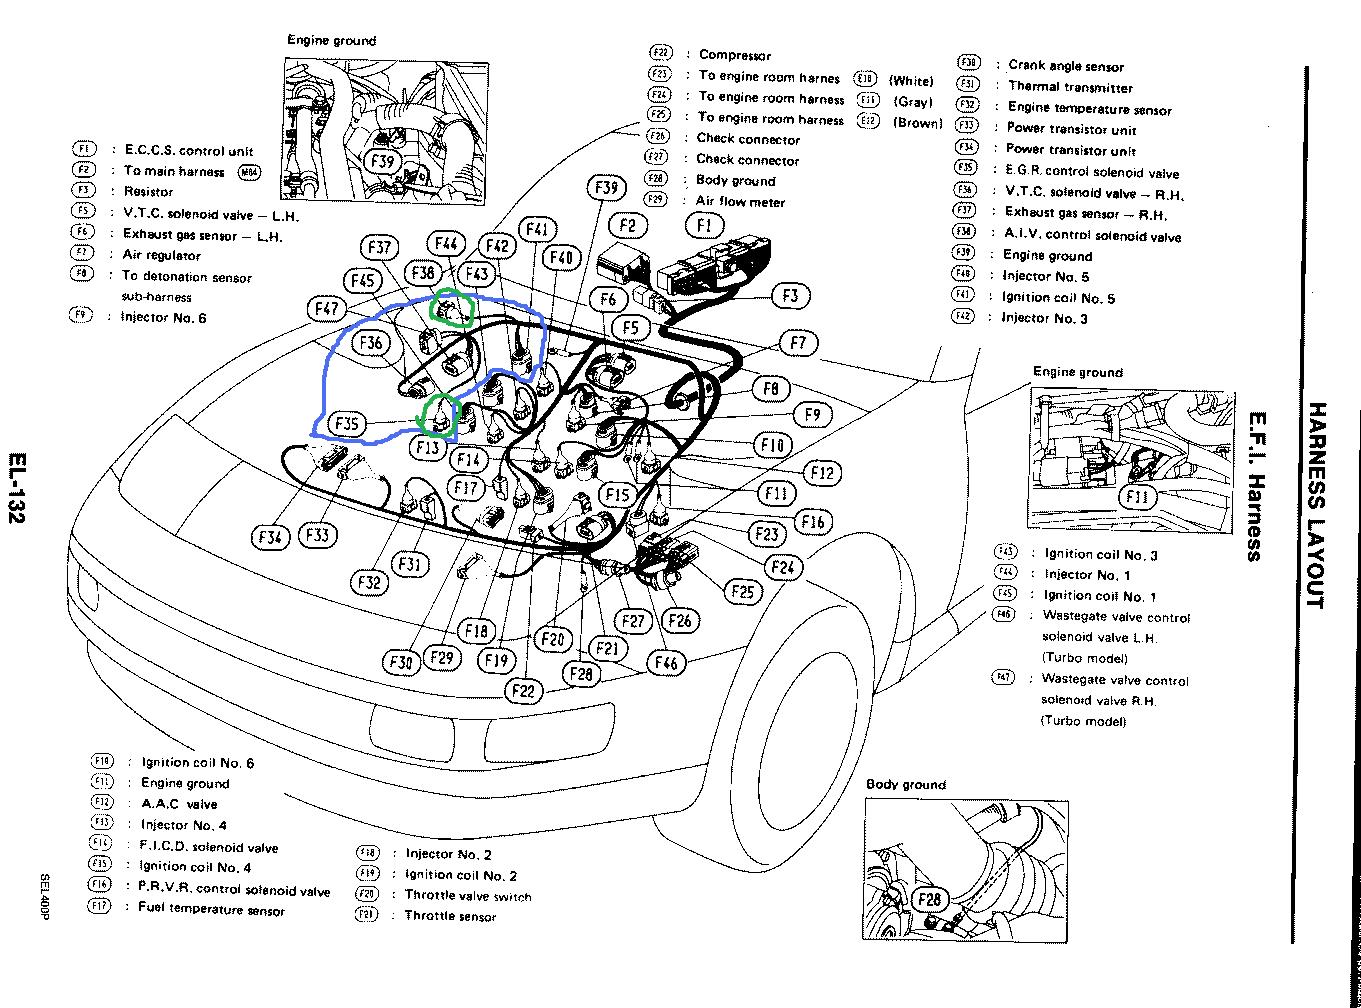 hight resolution of 1990 300zx wire harness wiring diagram article review 1990 nissan 300zx stereo wiring harness 1990 300zx